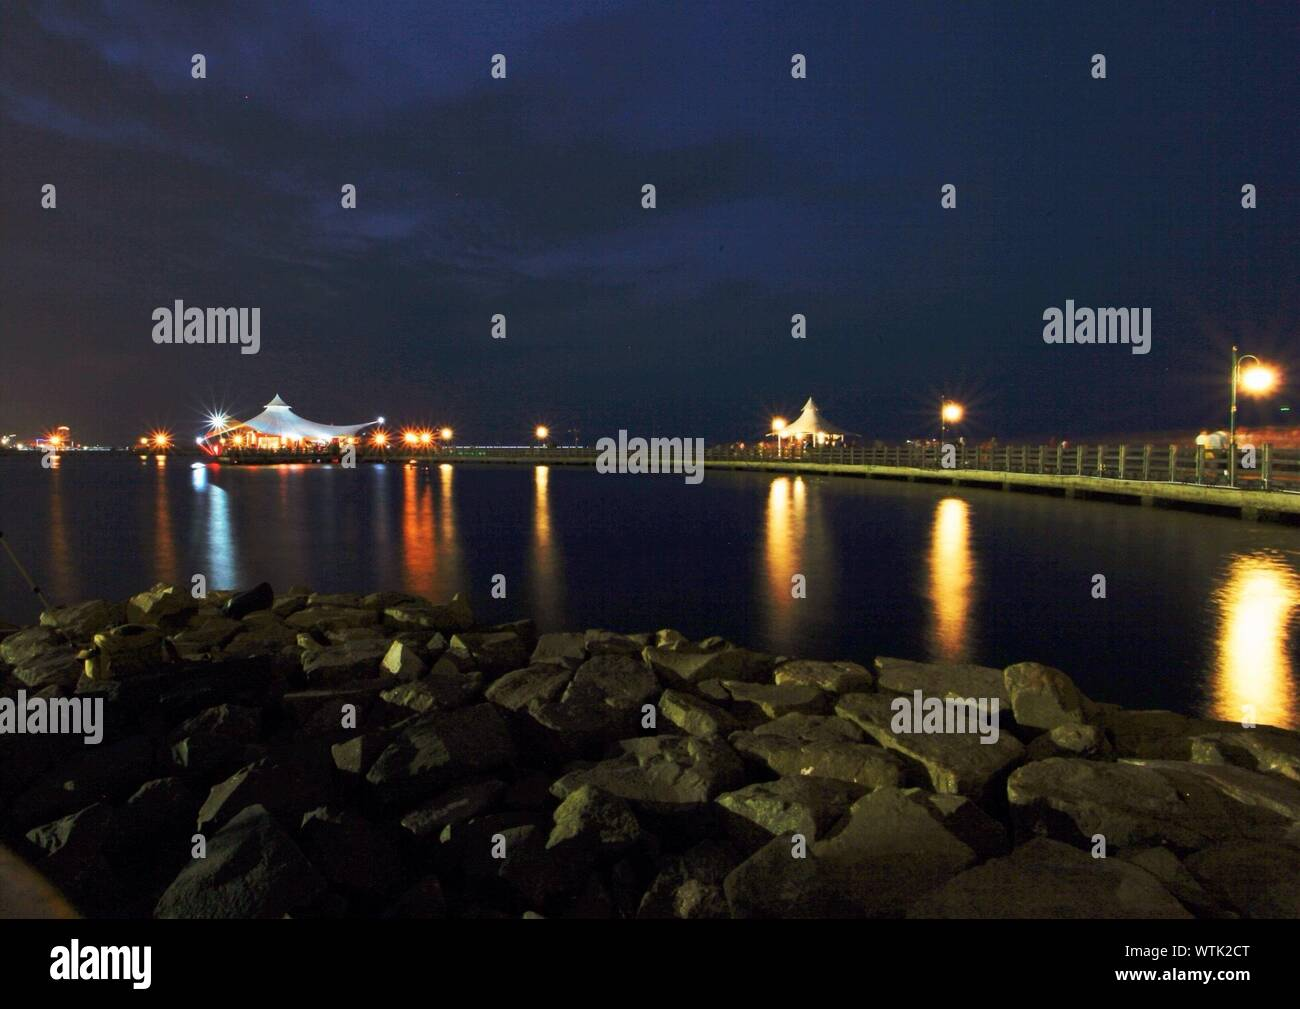 Scenic View Of Illuminated Ancol Dreamland Against Sky At Night Stock Photo